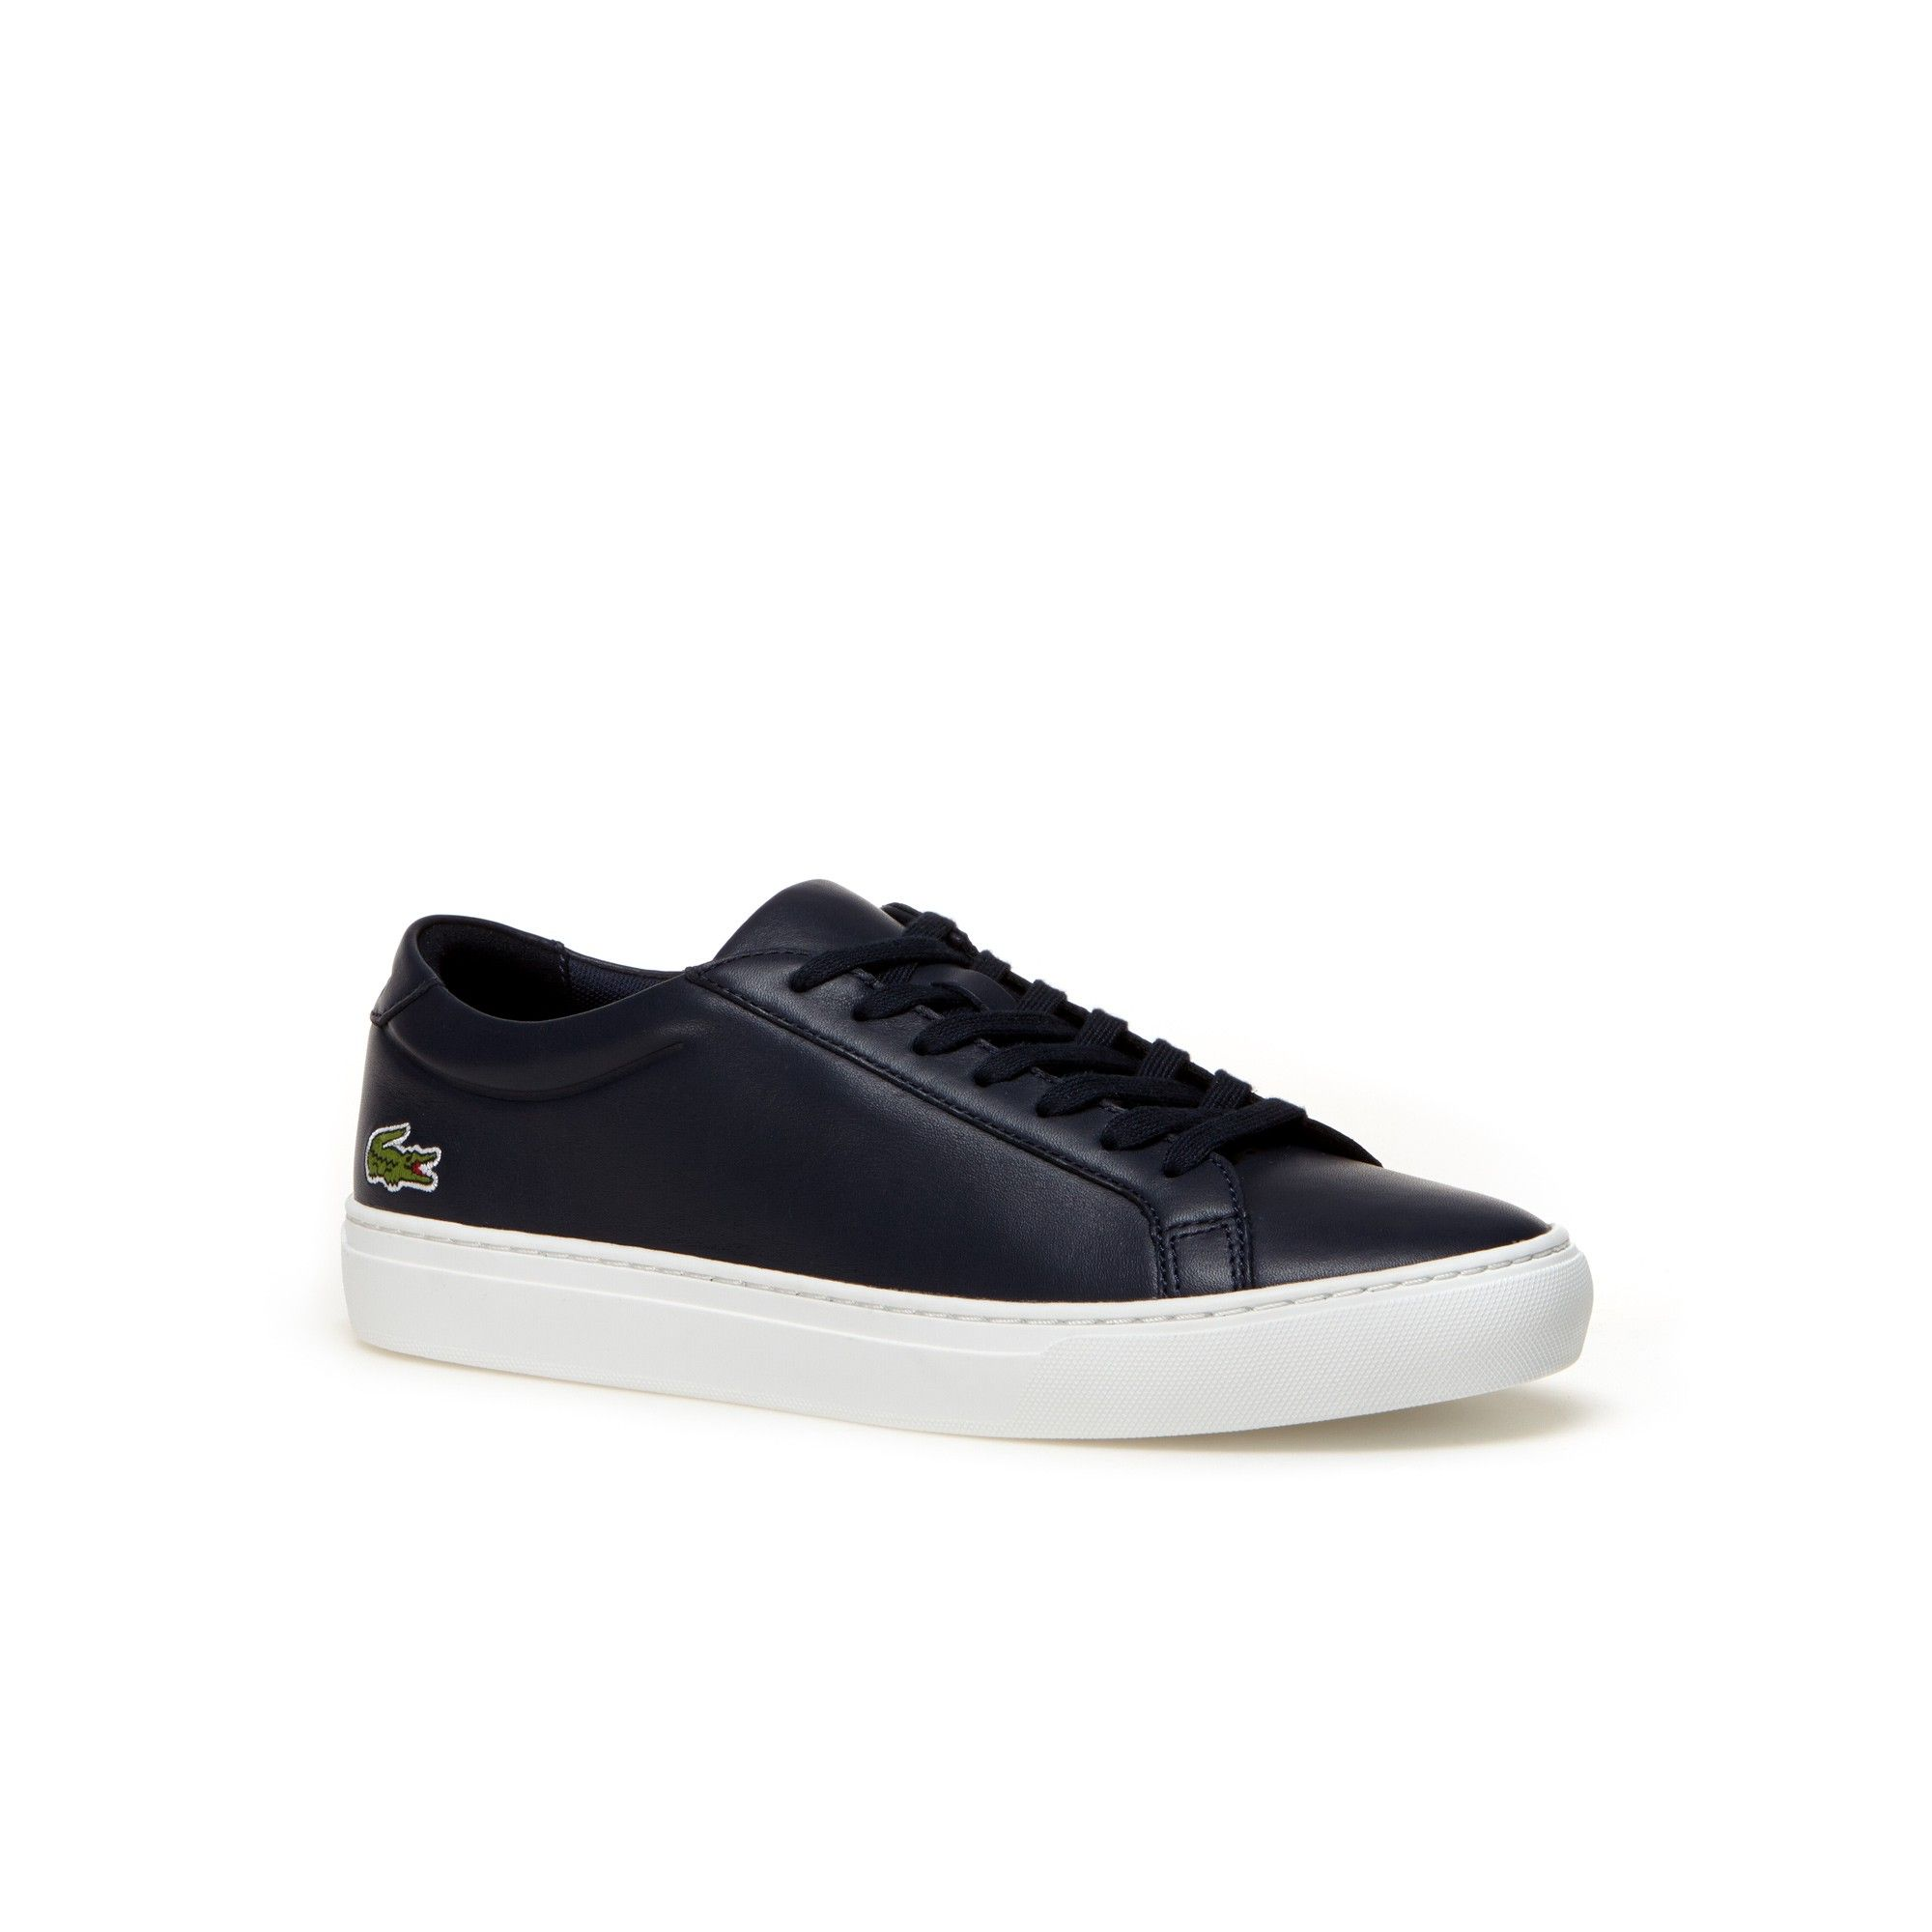 a383add0ce915f LACOSTE Men s L.12.12 Premium Leather Sneakers - navy.  lacoste  shoes